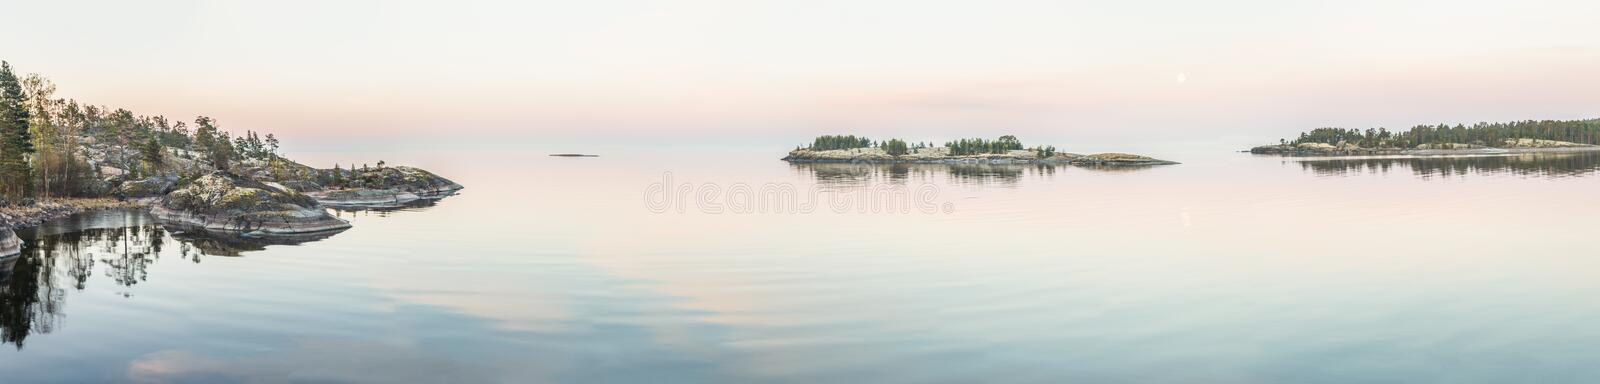 Rocky shore of the lake on a sunny day. stock photo